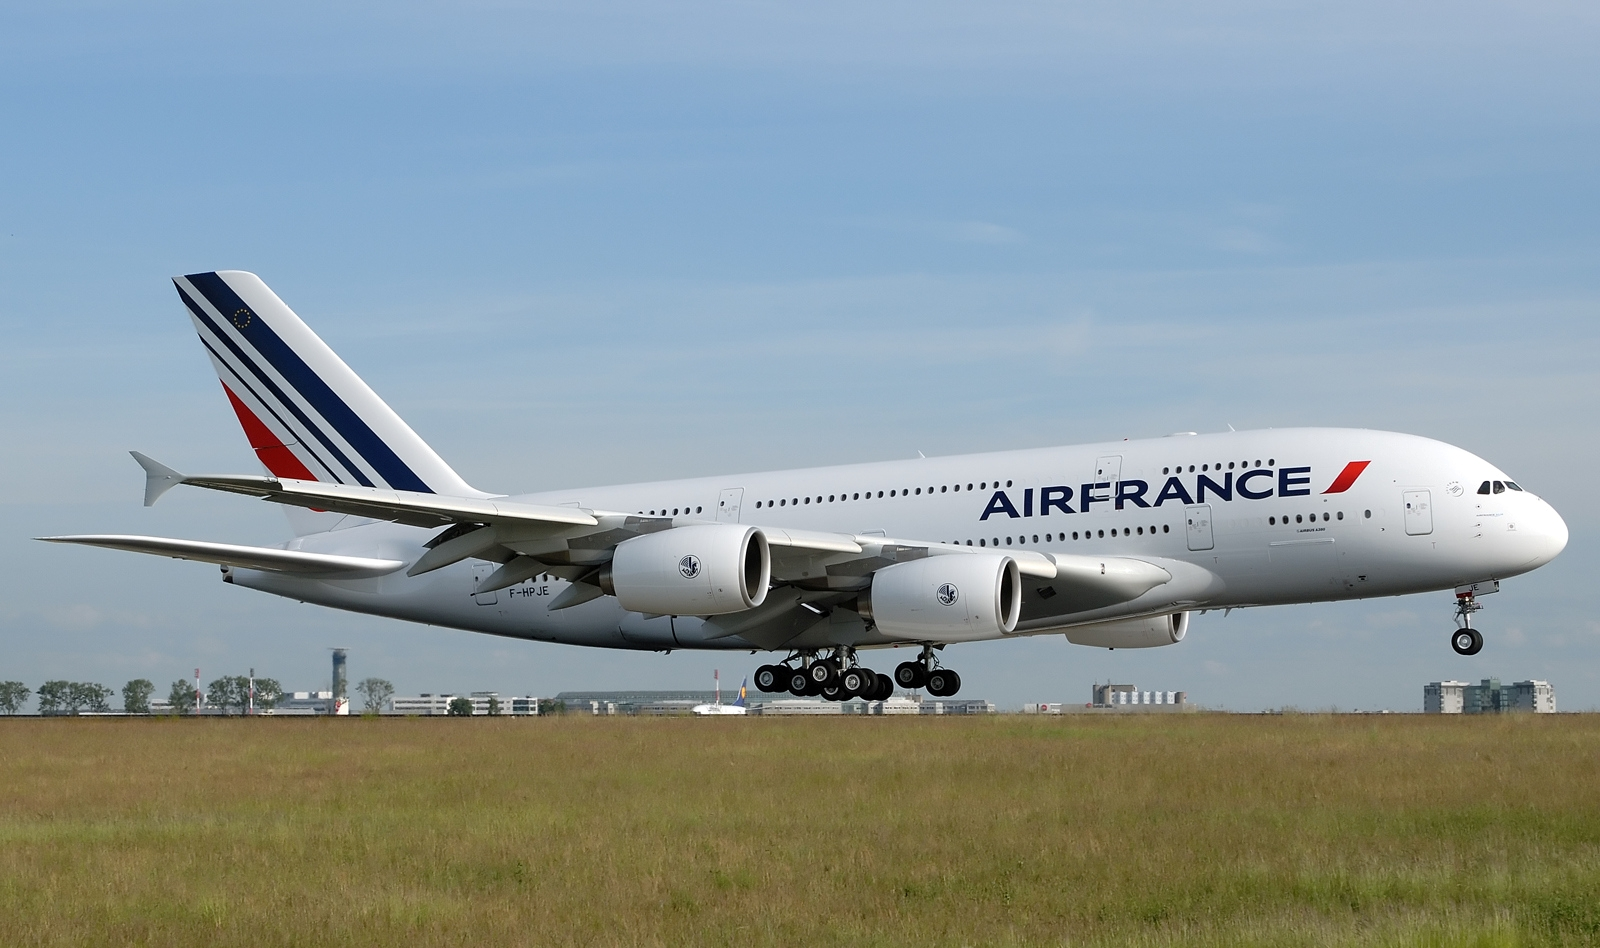 air france aircraft wallpaper | free download gamefree download game